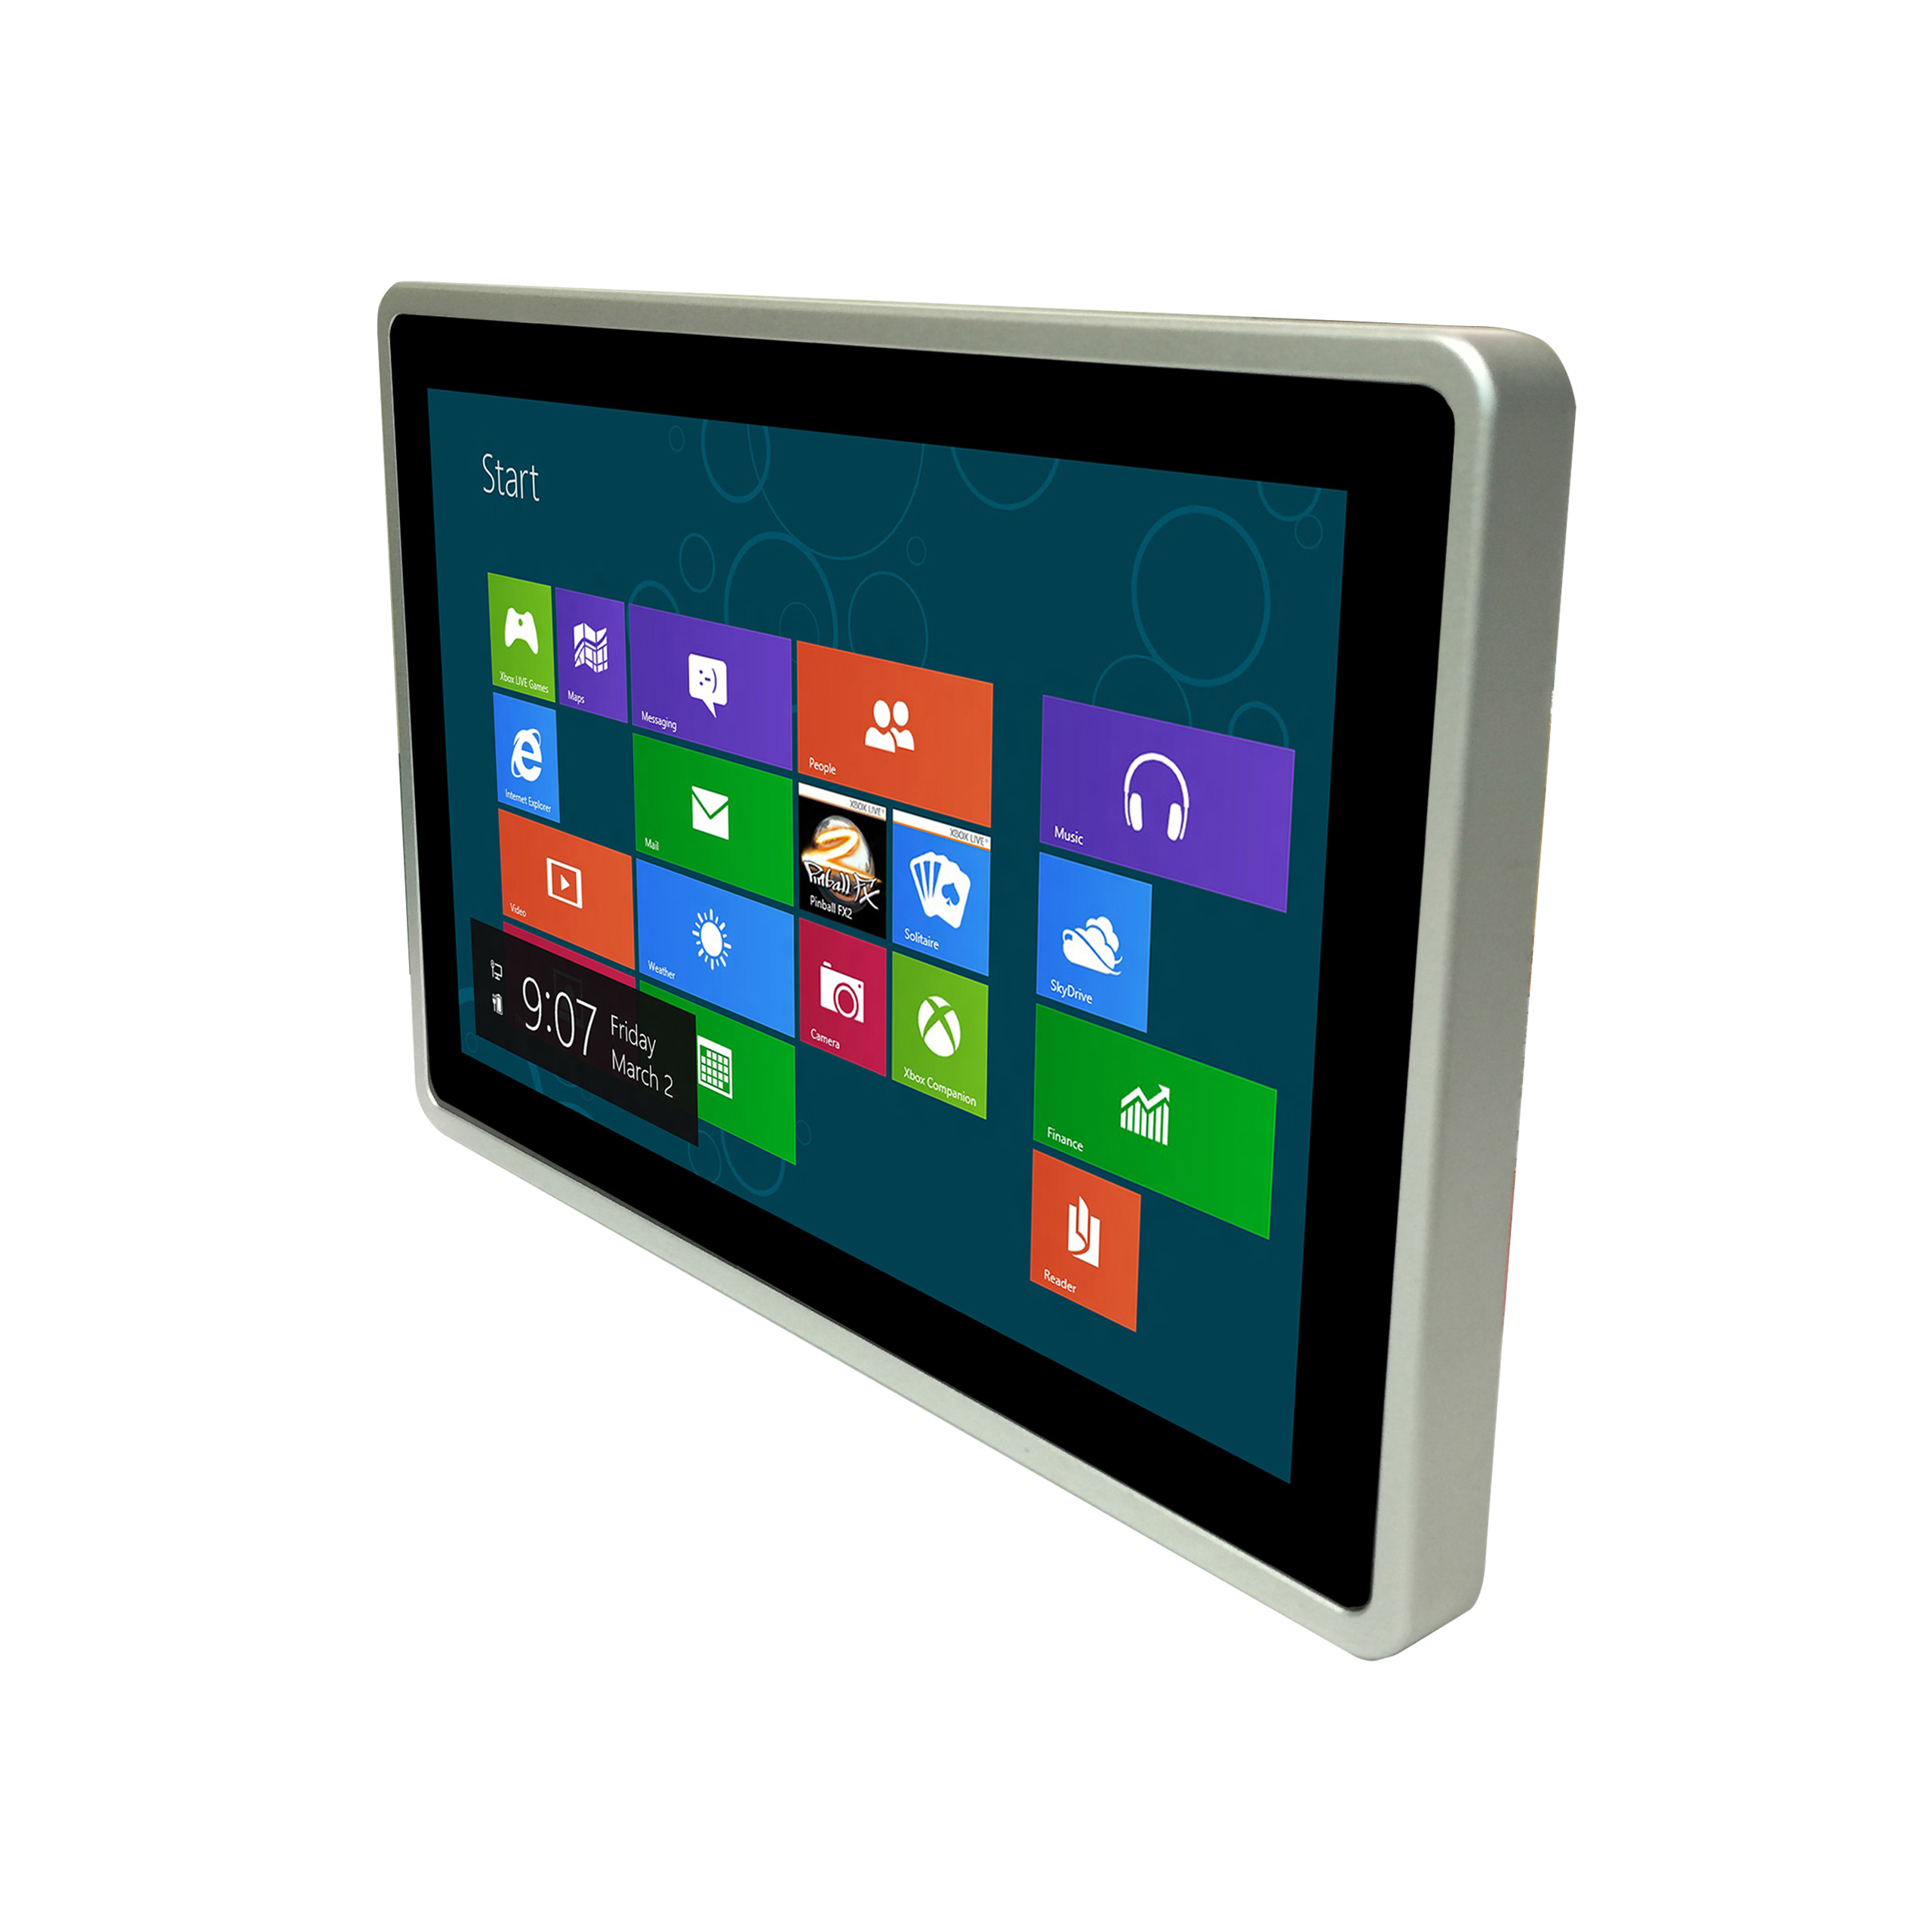 P-W810C 10.1 inch Quad Core Panel PC